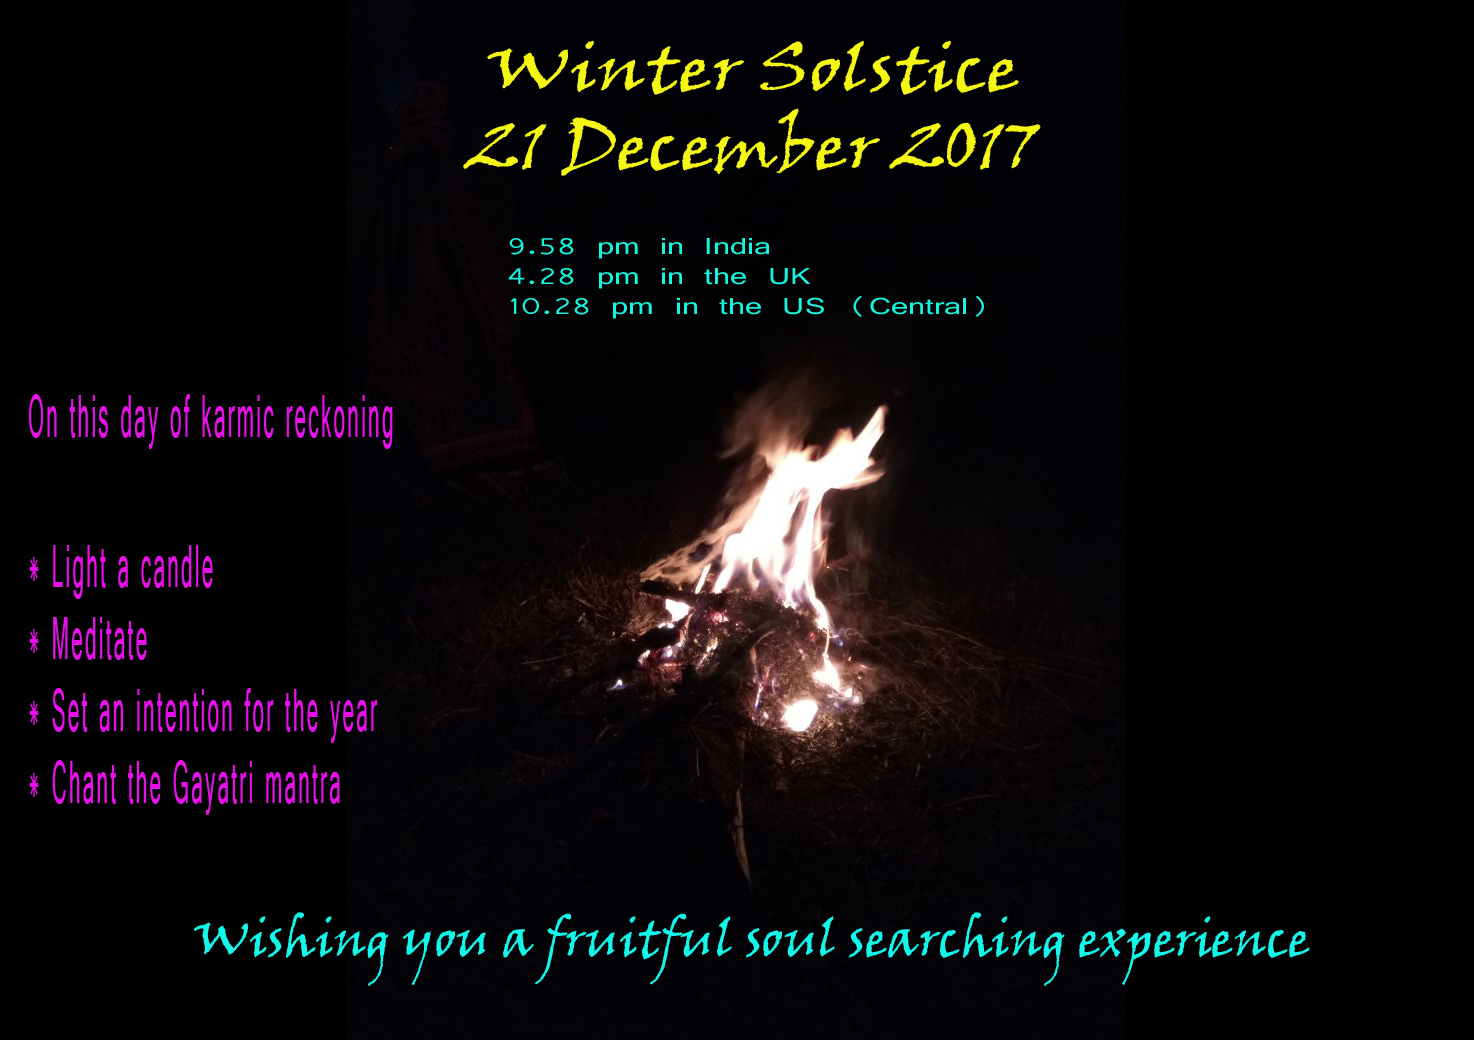 Winter Solstice 2017: Wishing you a fruitful soul searching experience